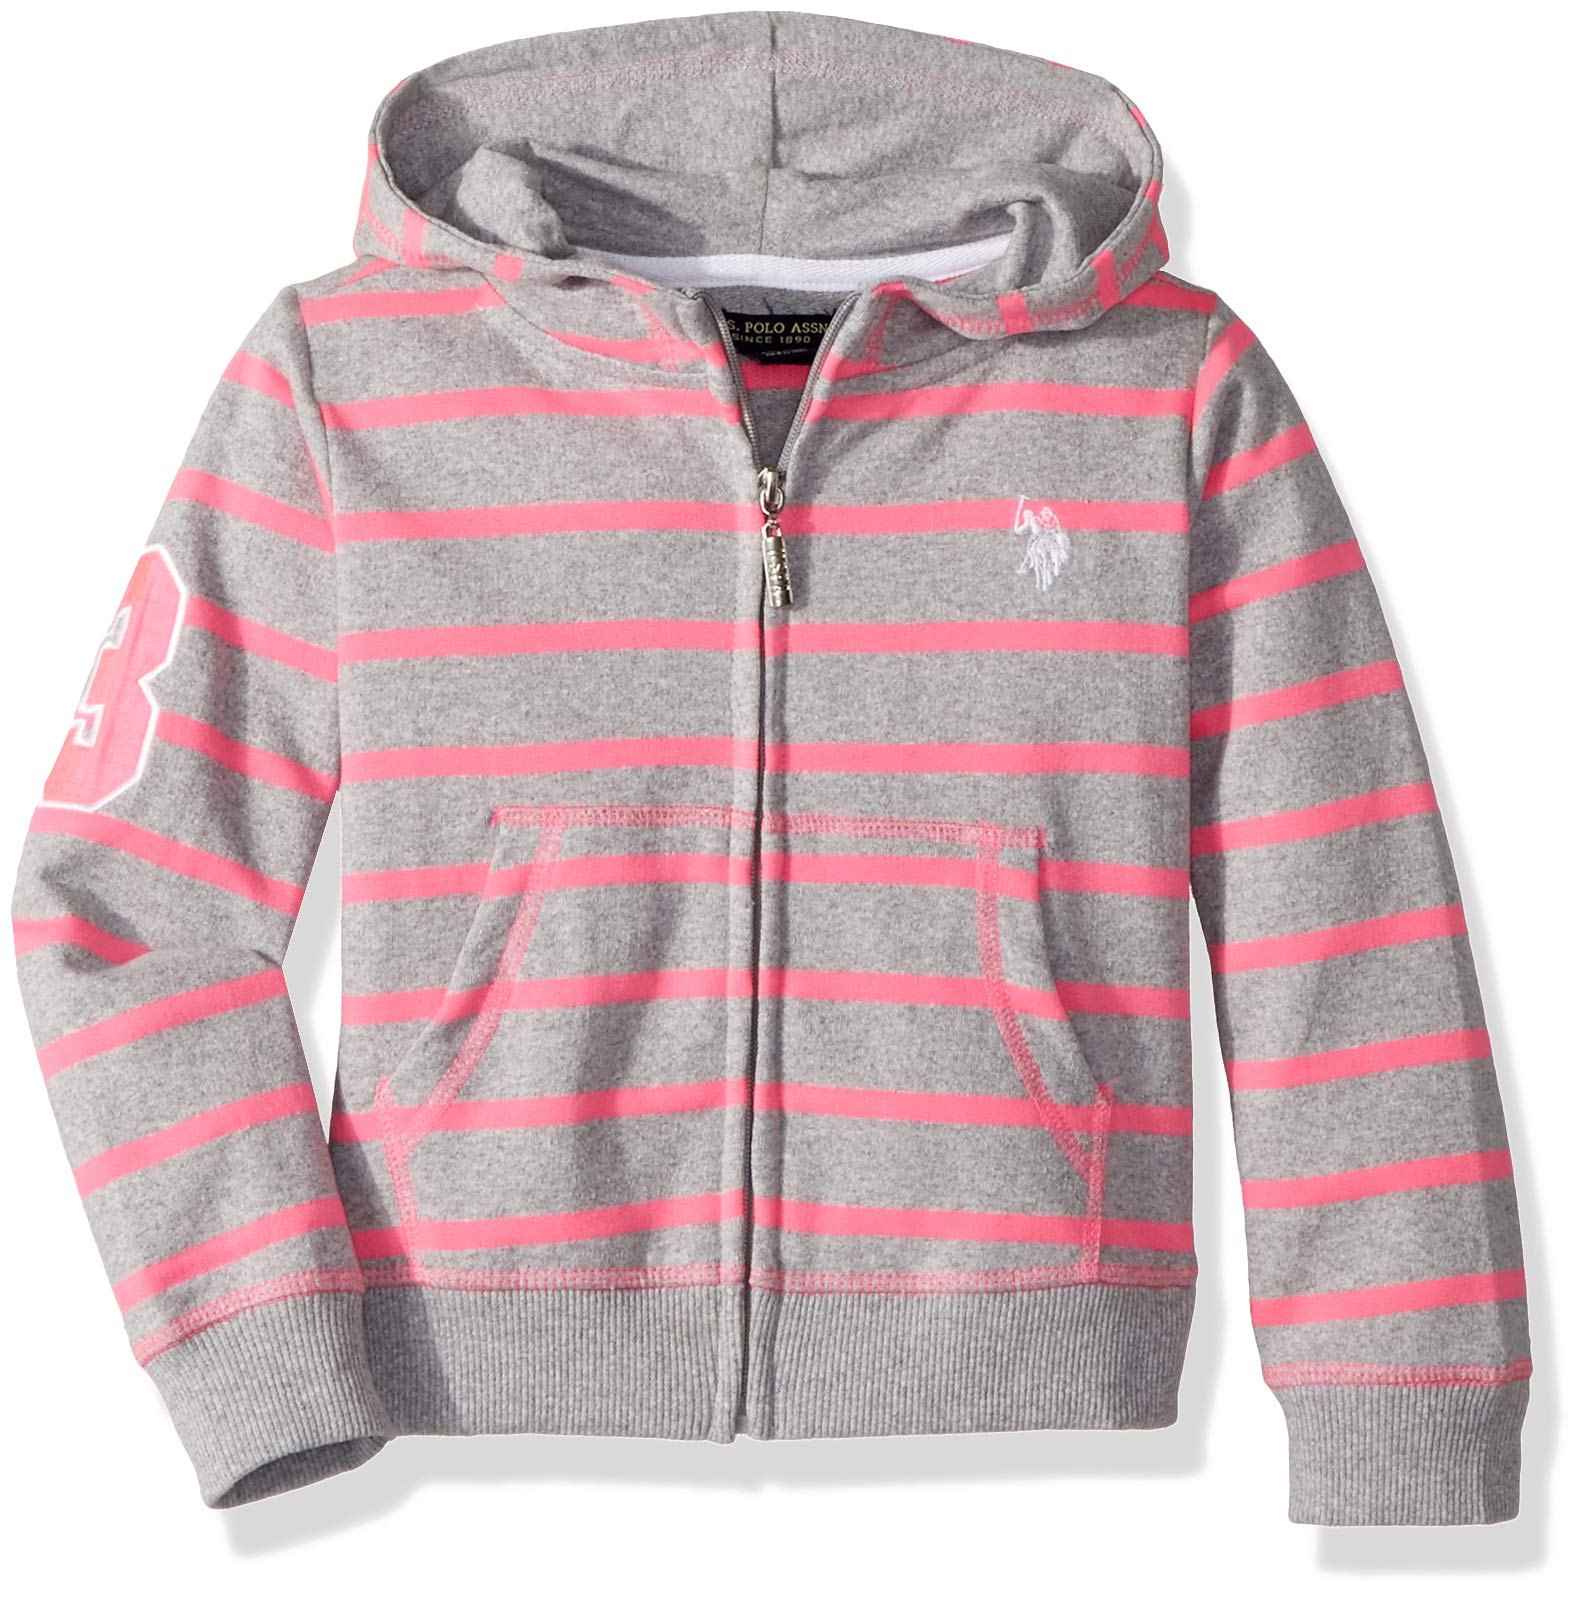 U.S. Polo Assn. Big Girls' Long Sleeve French Terry Hoodie White Stripes Heather Grey, 7/8